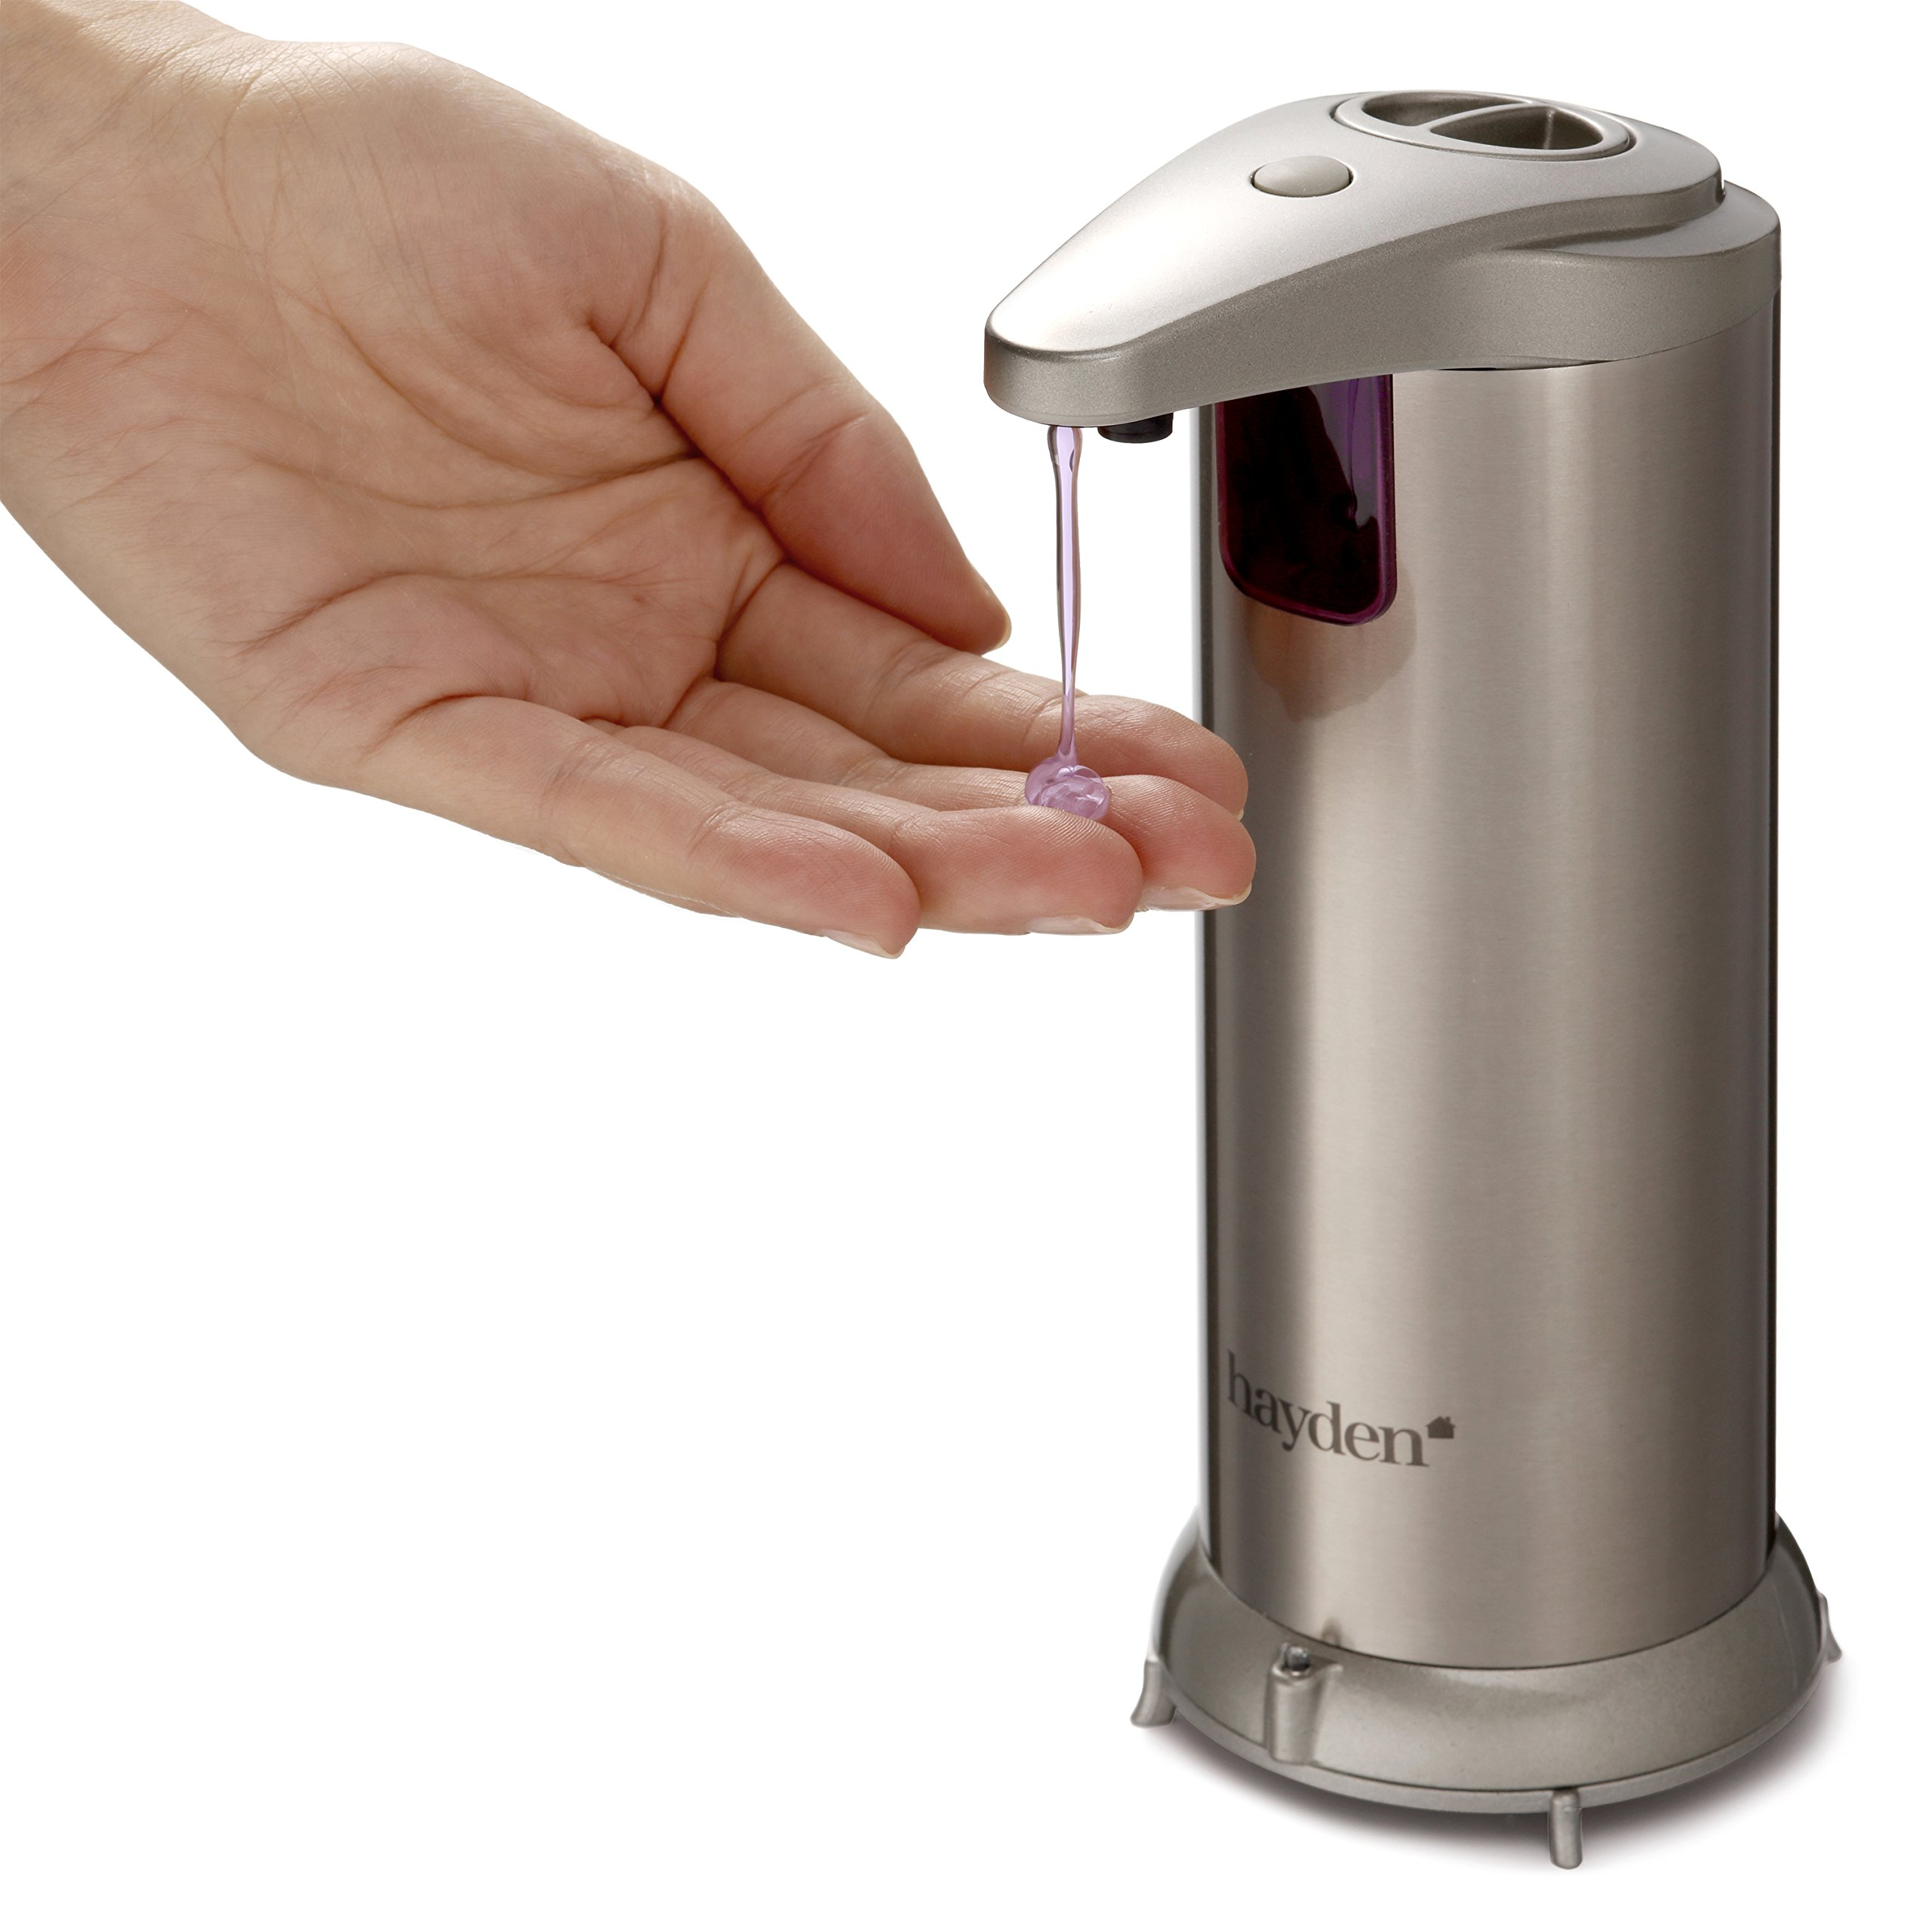 hayden premium automatic soap dispenser touchless perfect